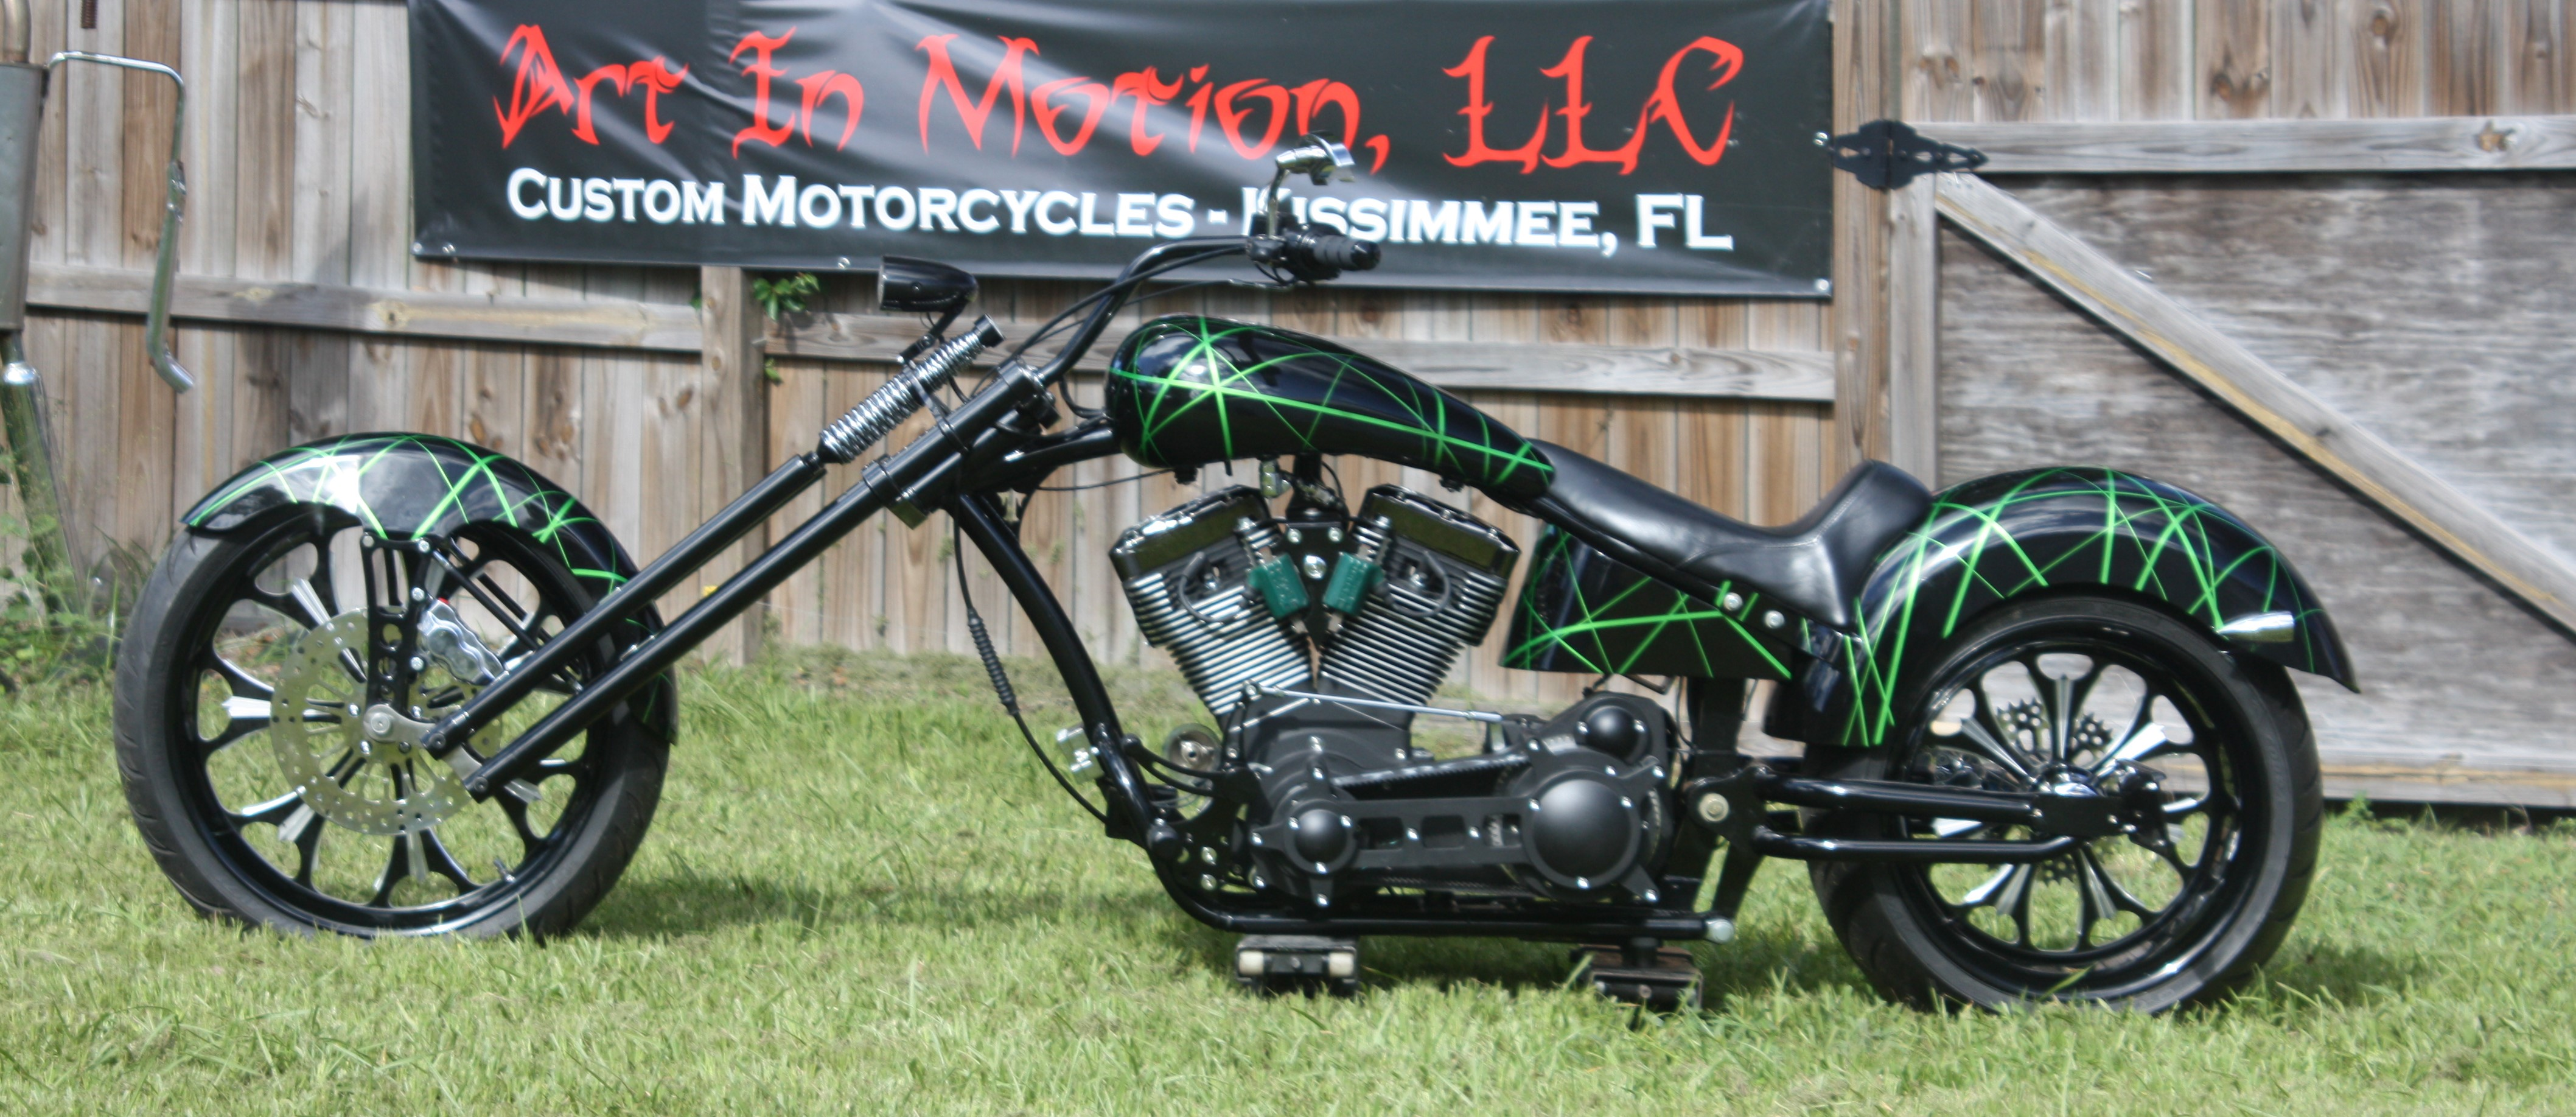 Art In Motion Custom Motorcycles and Trike Parts | Bike In a Box Kits